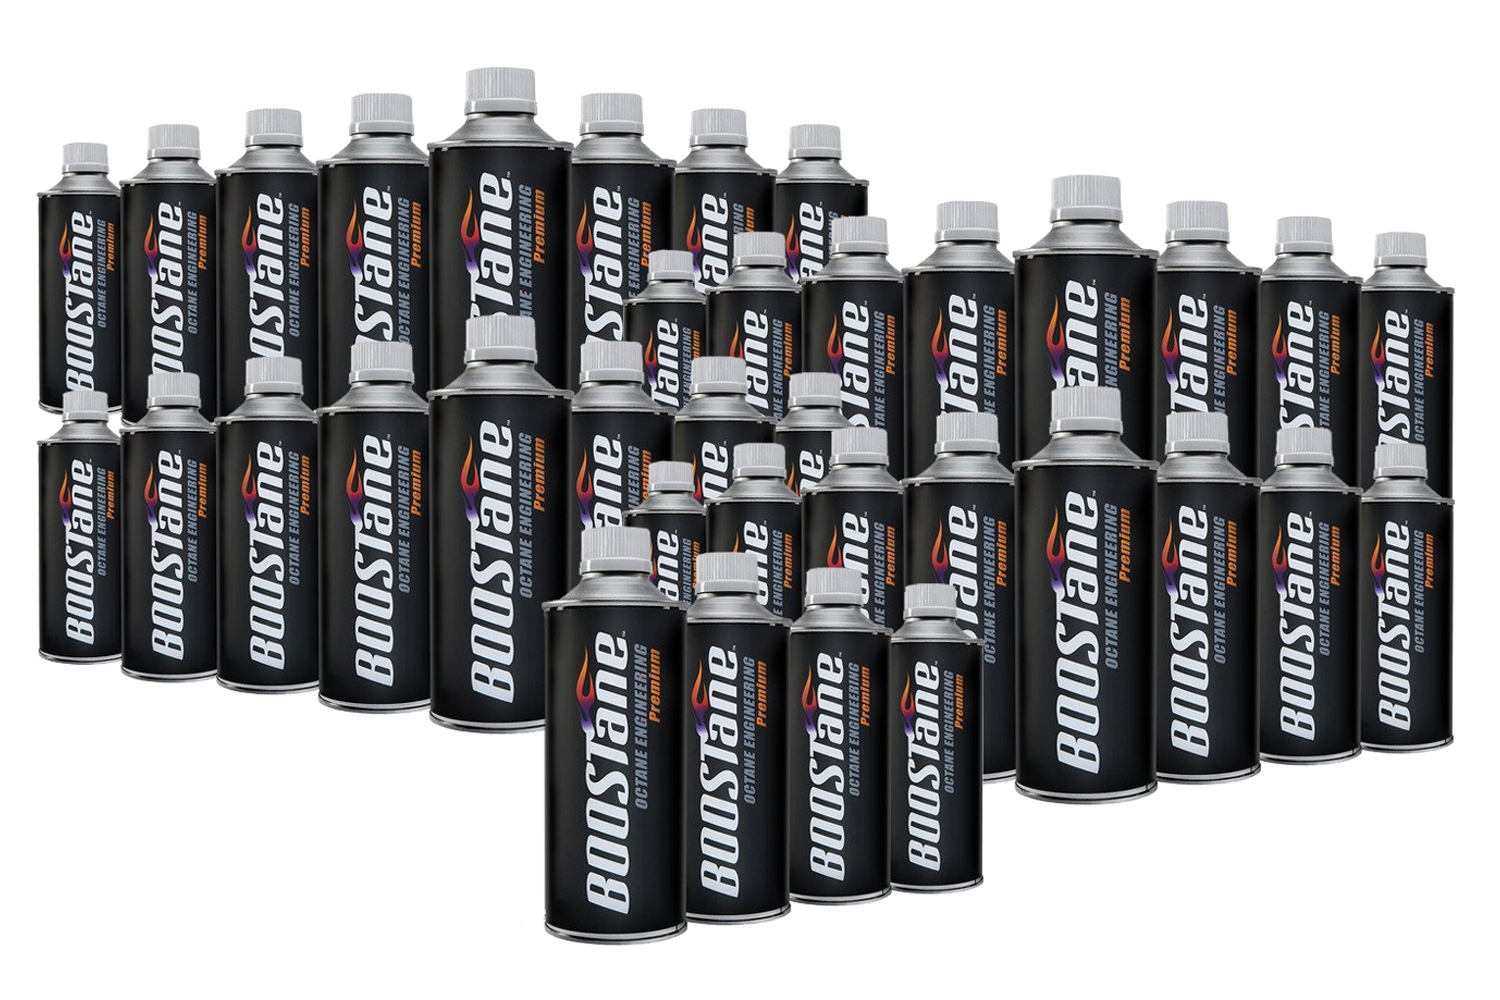 Premium-Octane Boost Case 36 x 16oz Bottles